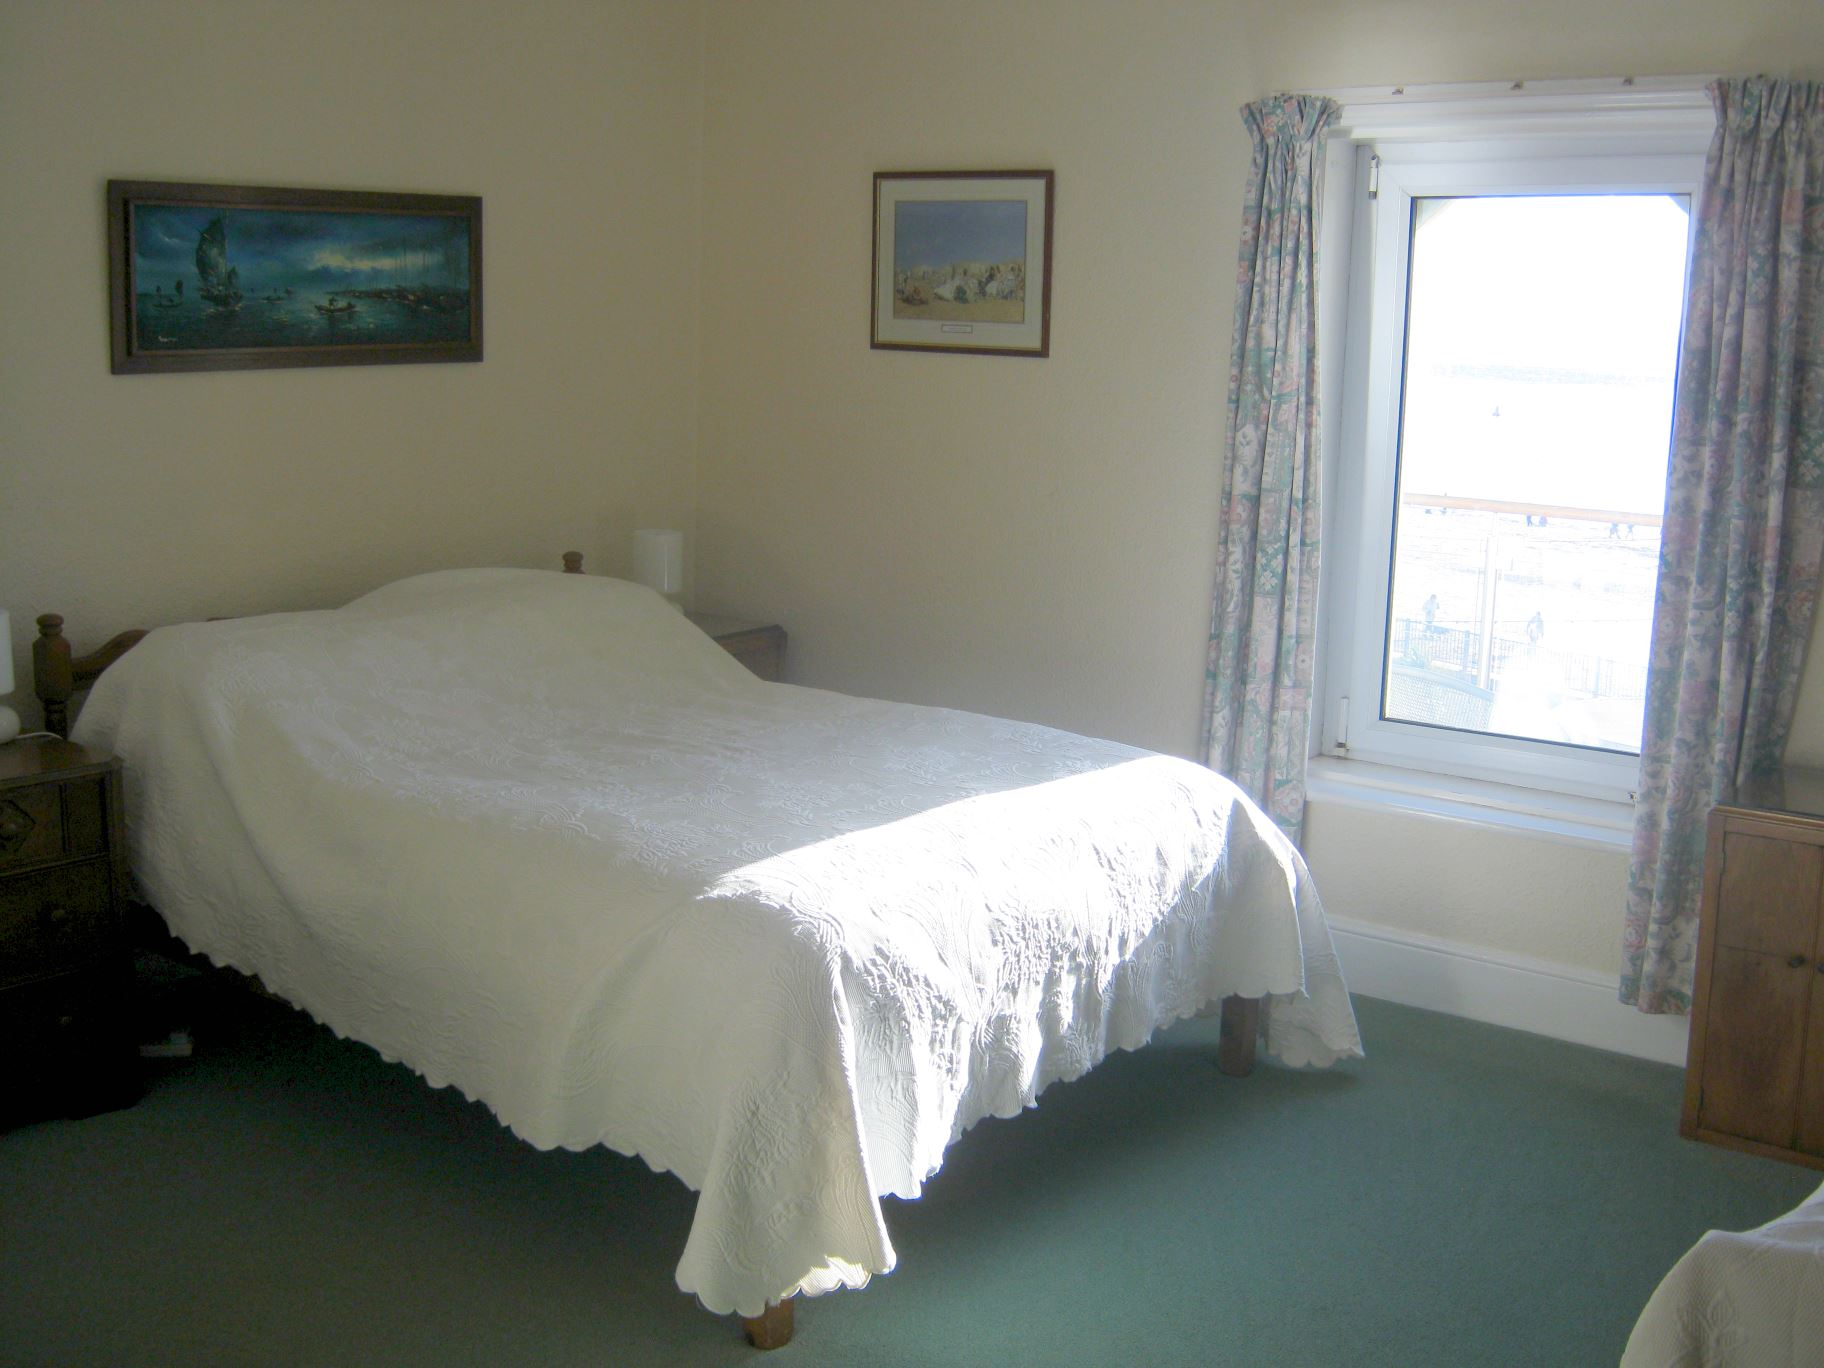 Photo showing main bedroom